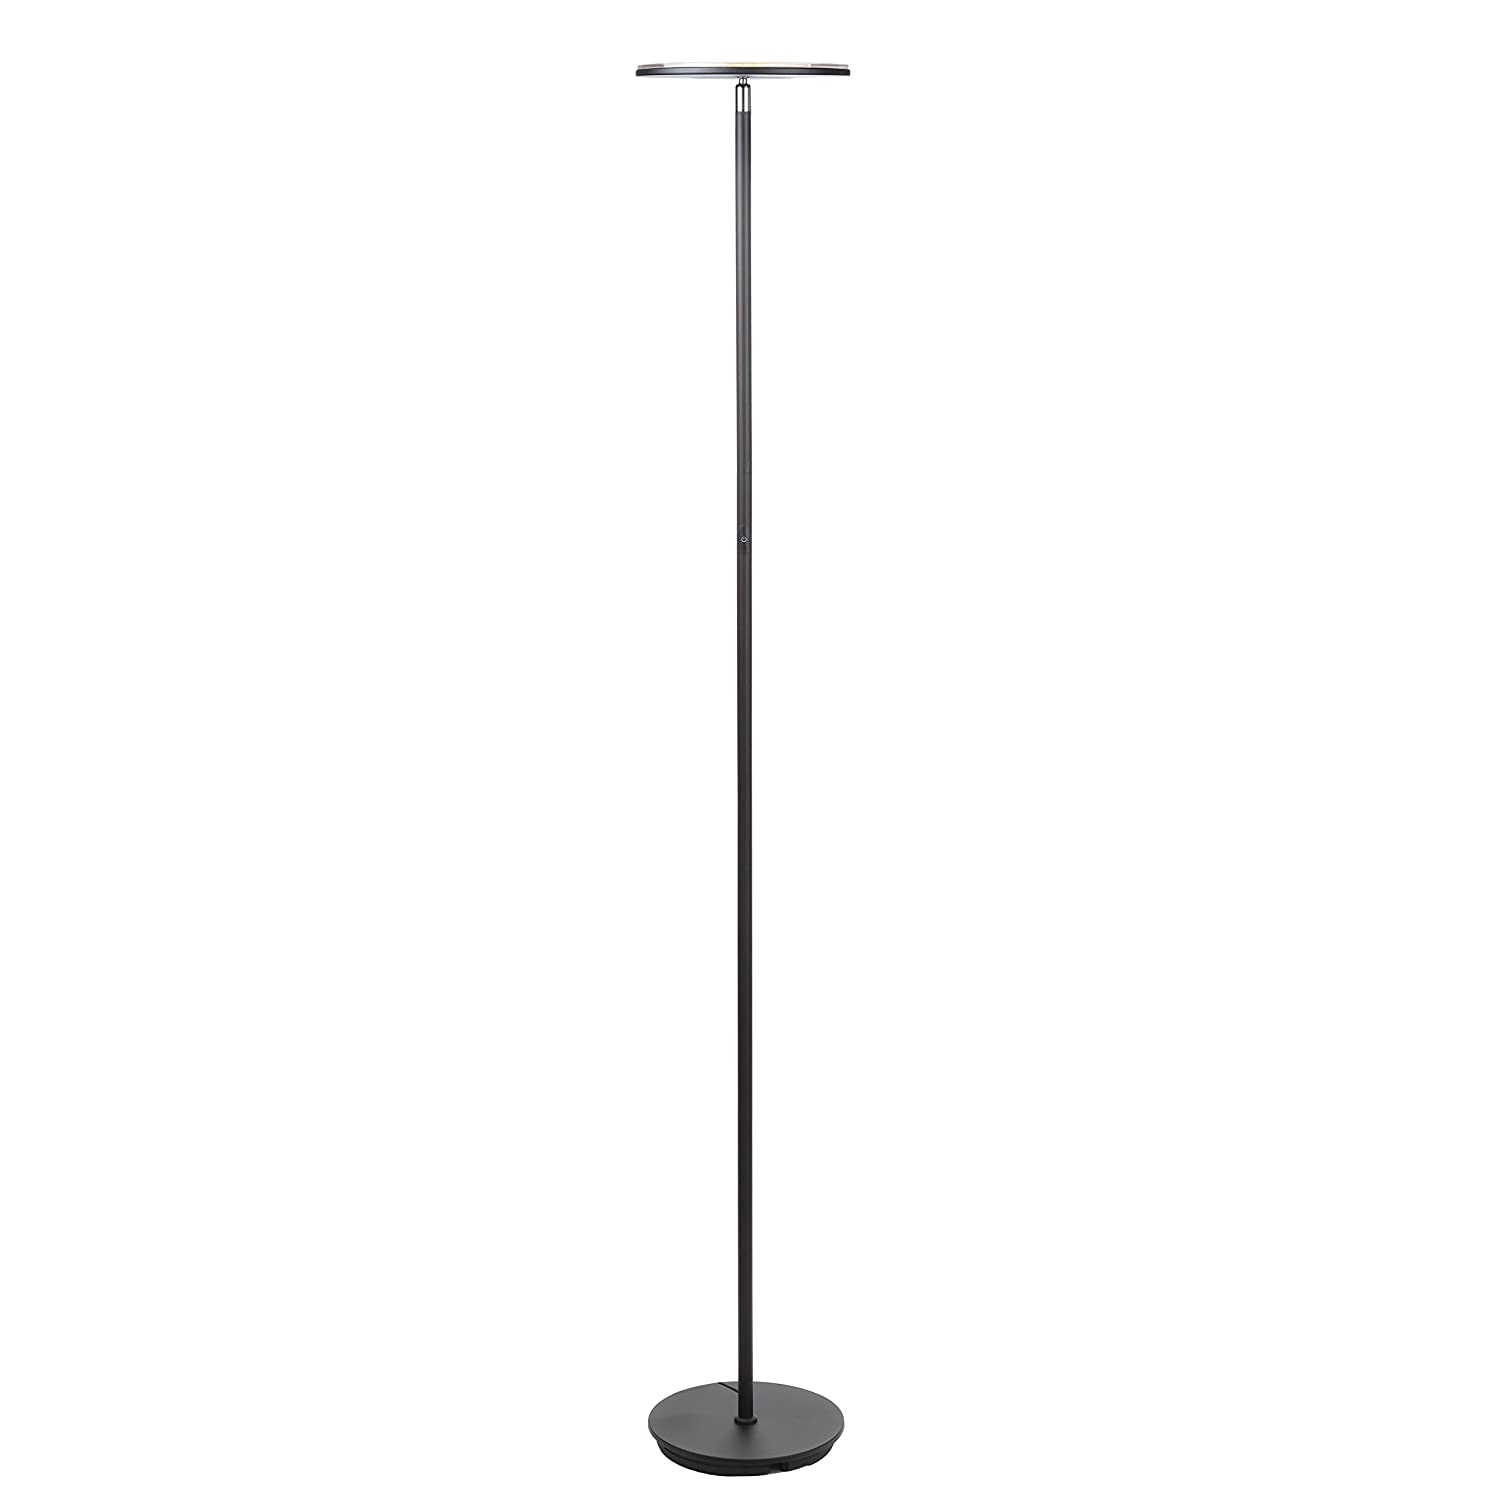 Tall living room lamps - Brightech Sky Led Torchiere Floor Lamp Dimmable 30 Watt Bright Led With Omni Directional Head Modern Tall Standing Pole Uplight Light For Living Room